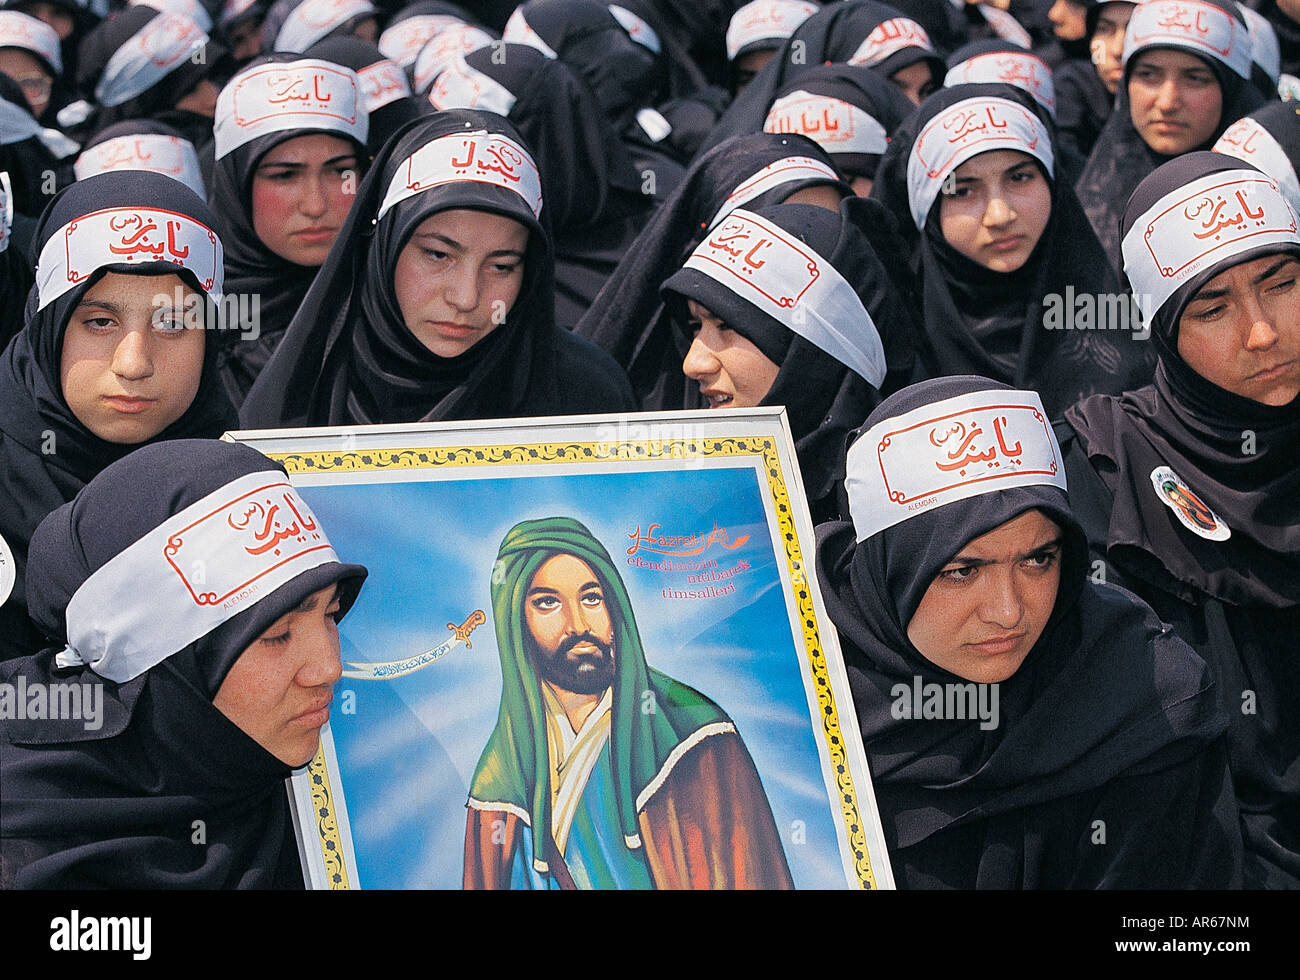 Shiite Muslim girls mourning for Al Hussain on the Ashura day in Istanbul Turkey . - Stock Image